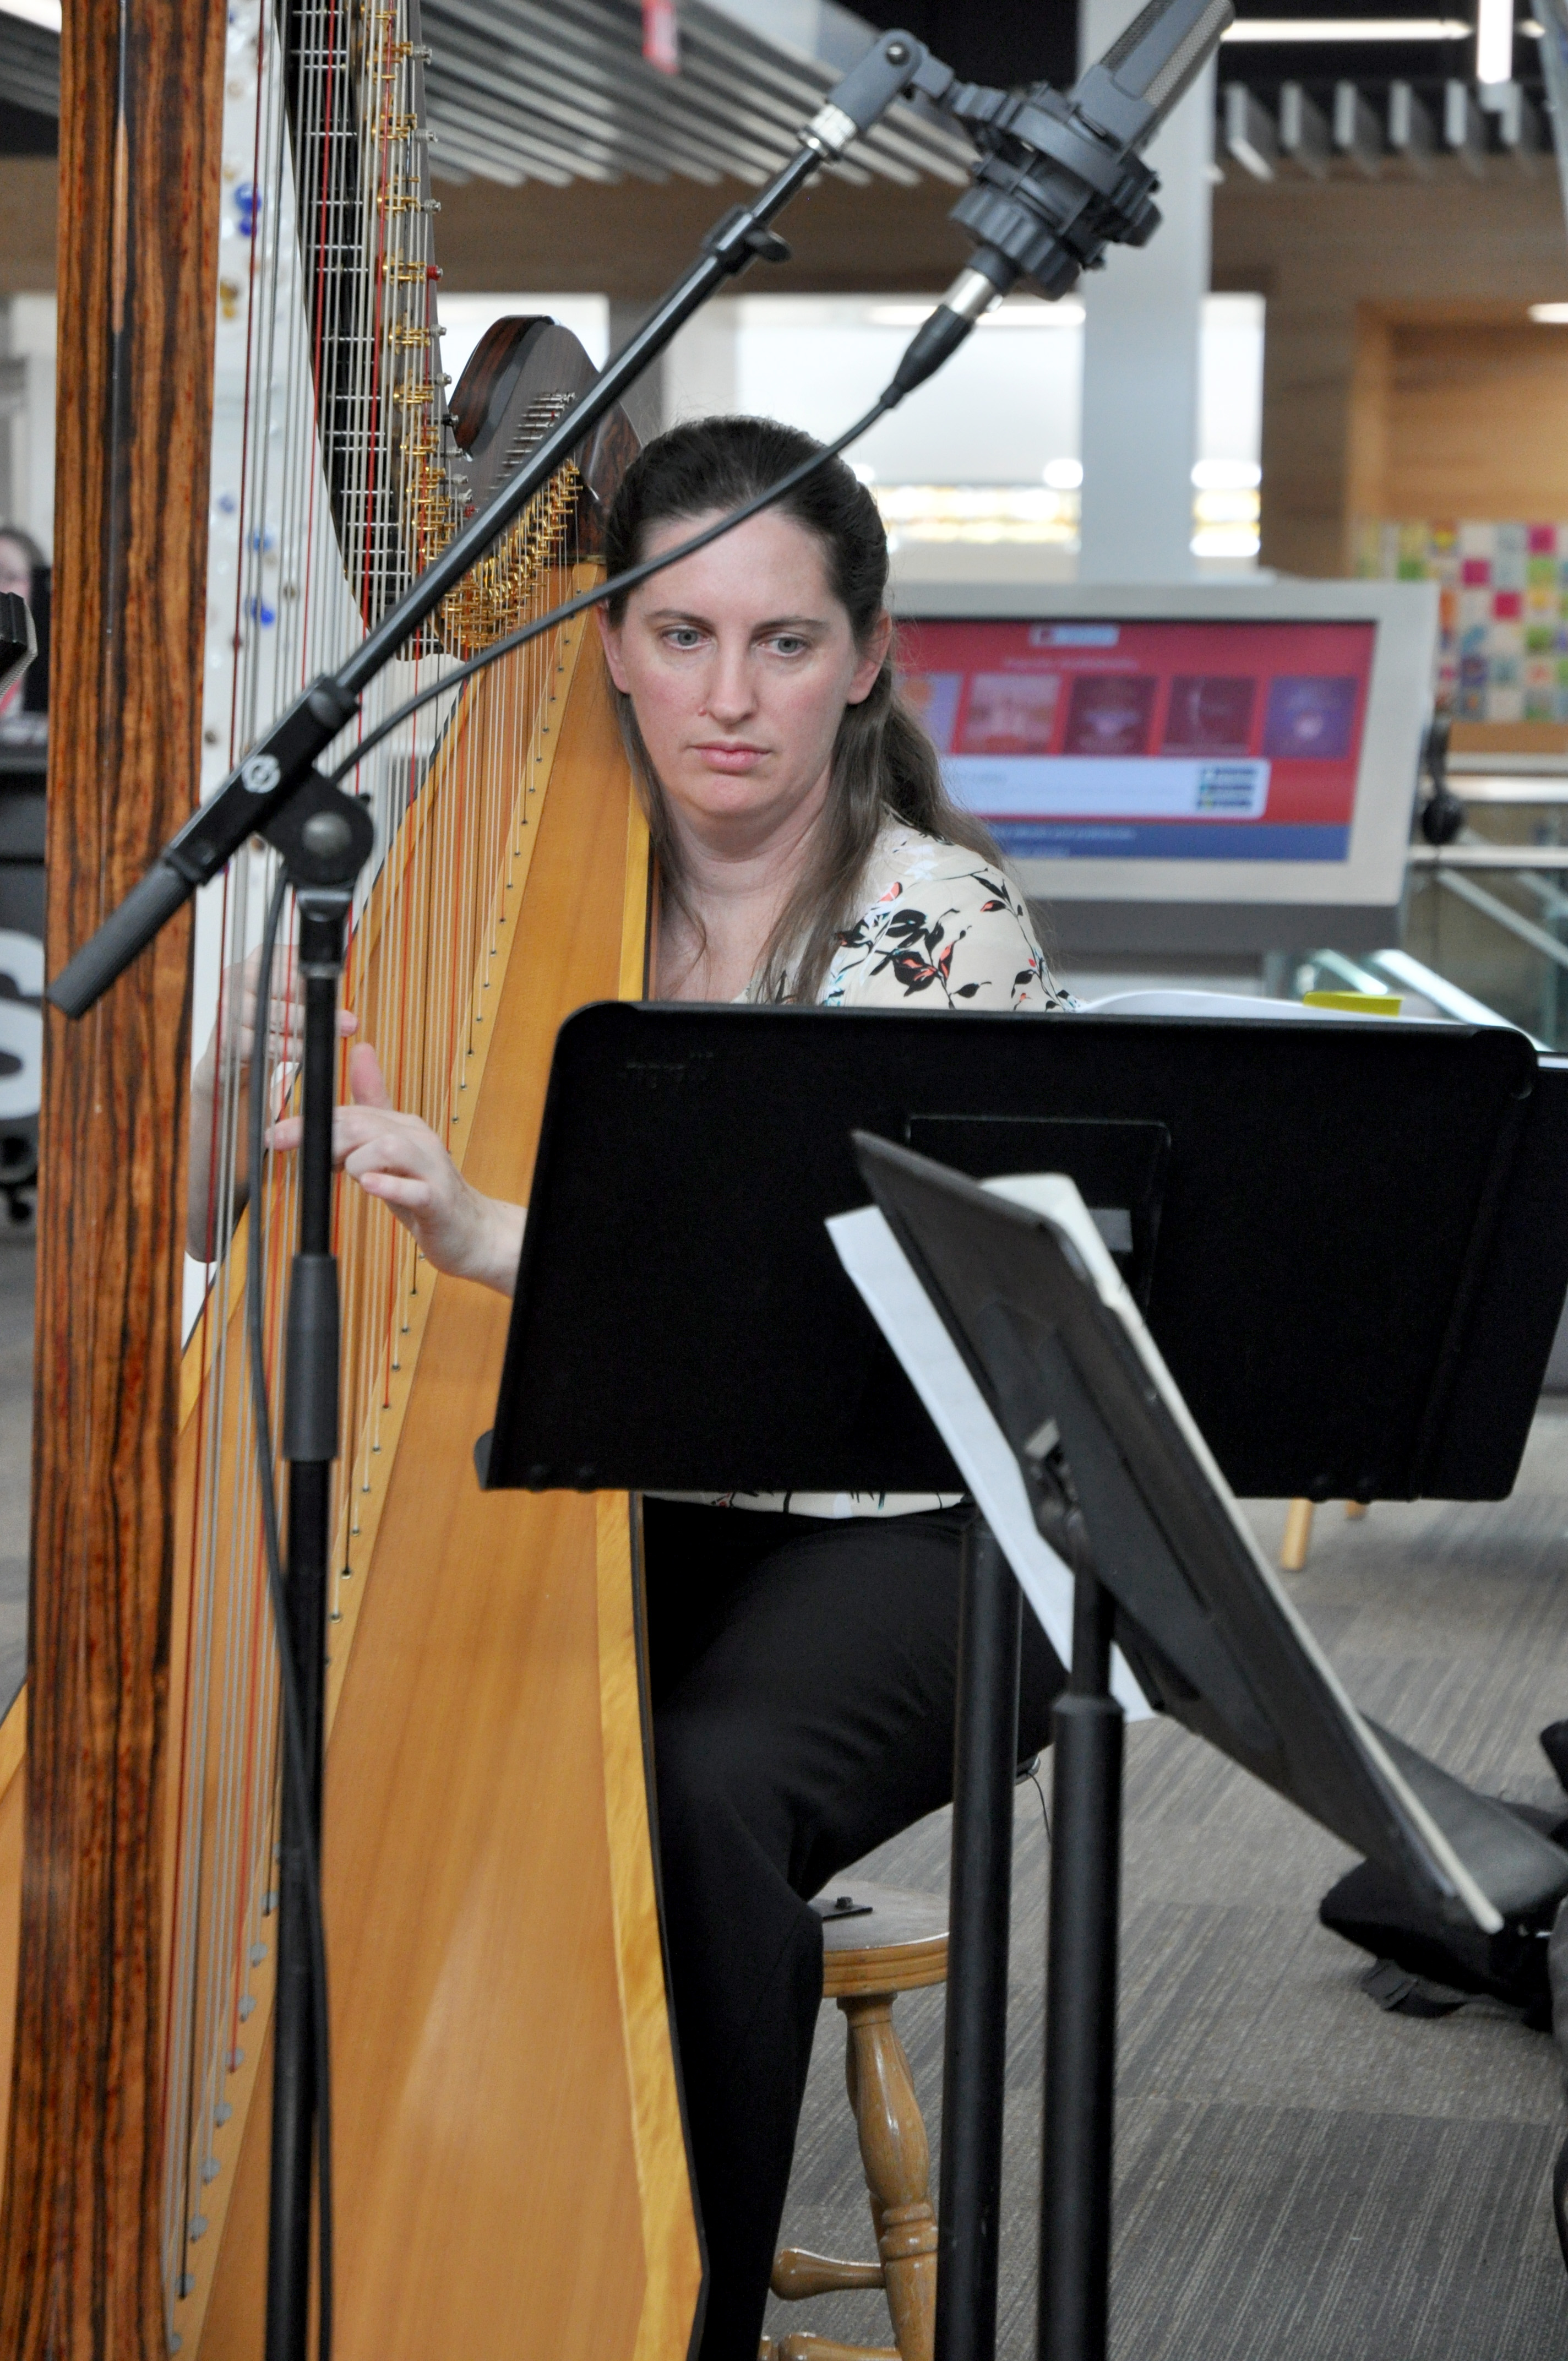 Erin Wood on harp.